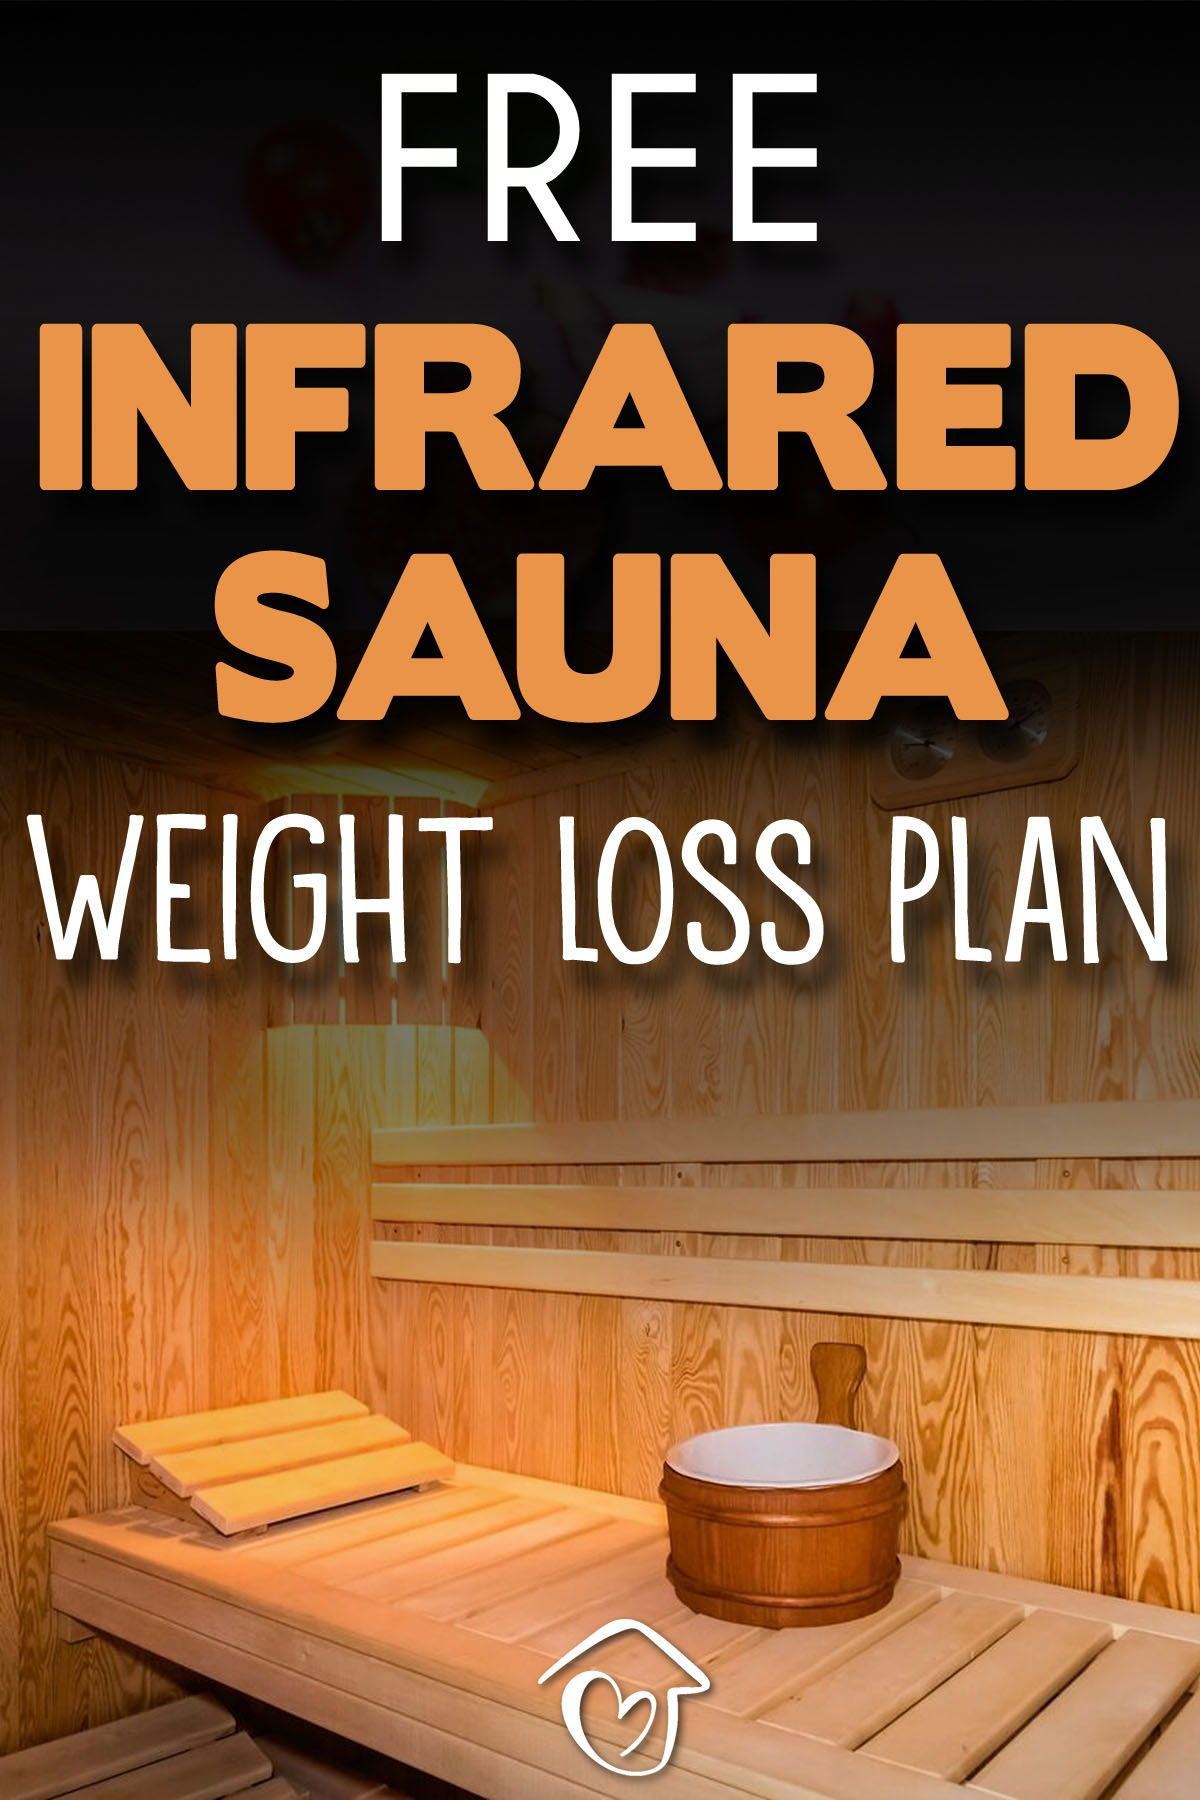 Infrared Sauna Weight Loss Before And After : infrared, sauna, weight, before, after, Sauna